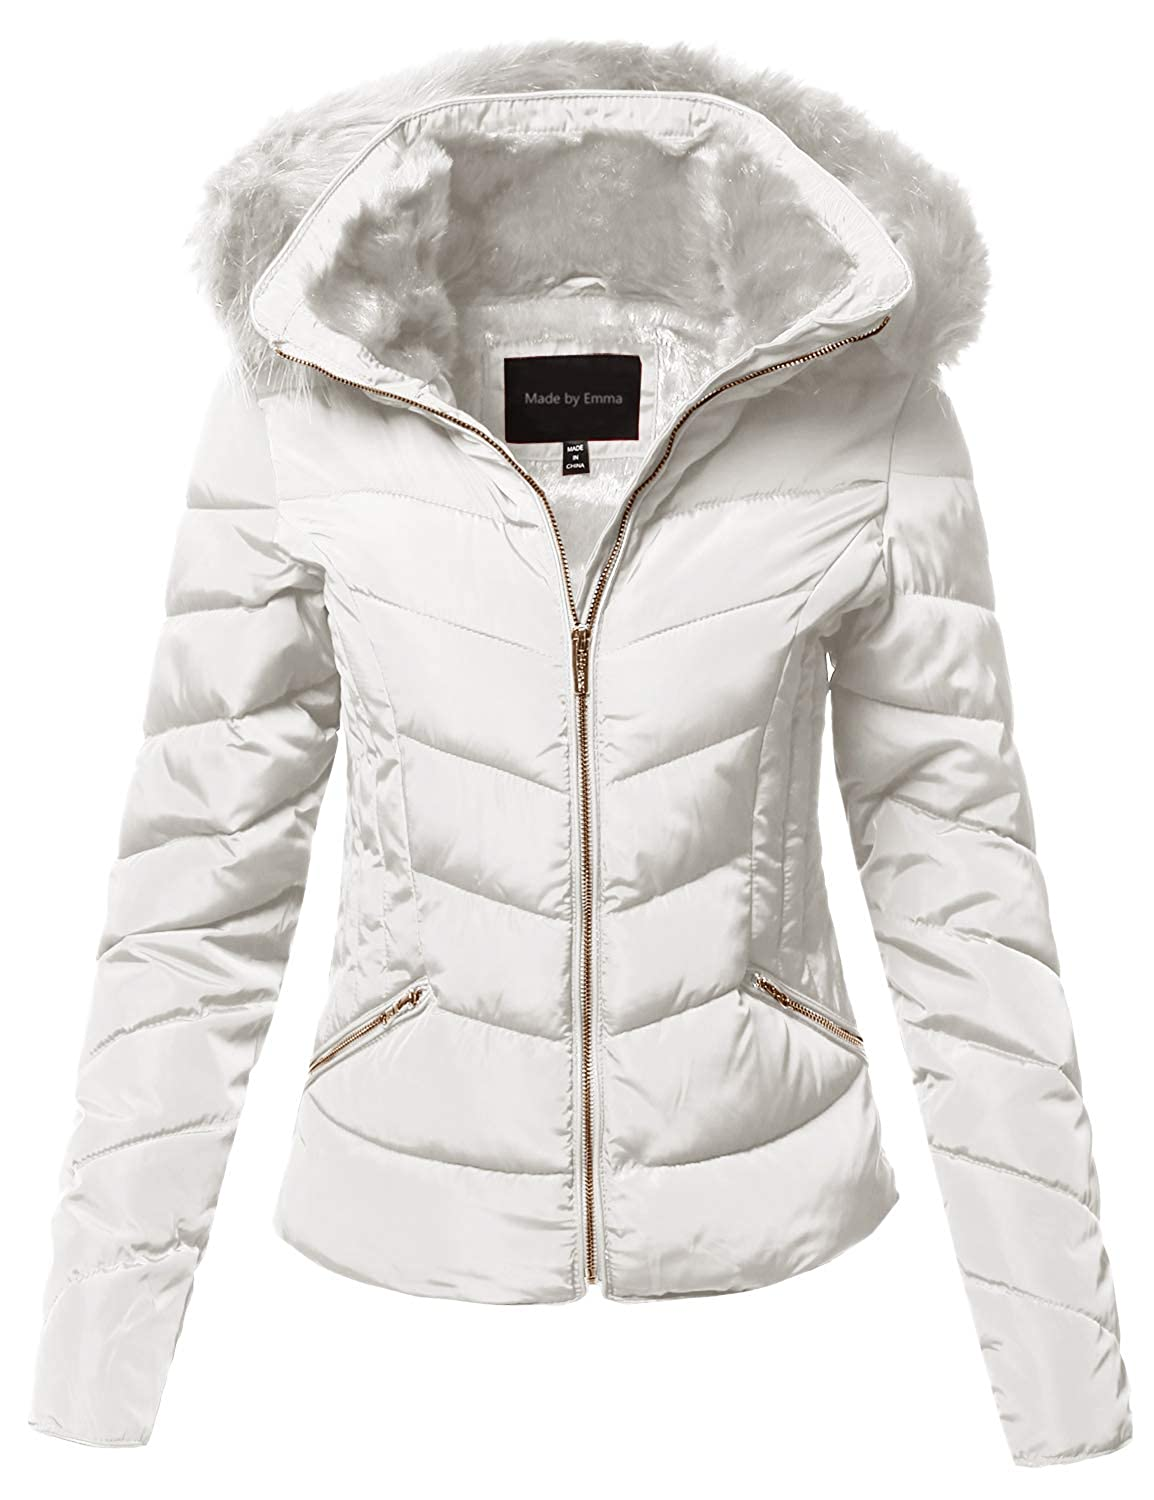 165e60118 Amazon.com: Made by Emma Women's Quilted Puffer Jacket with ...